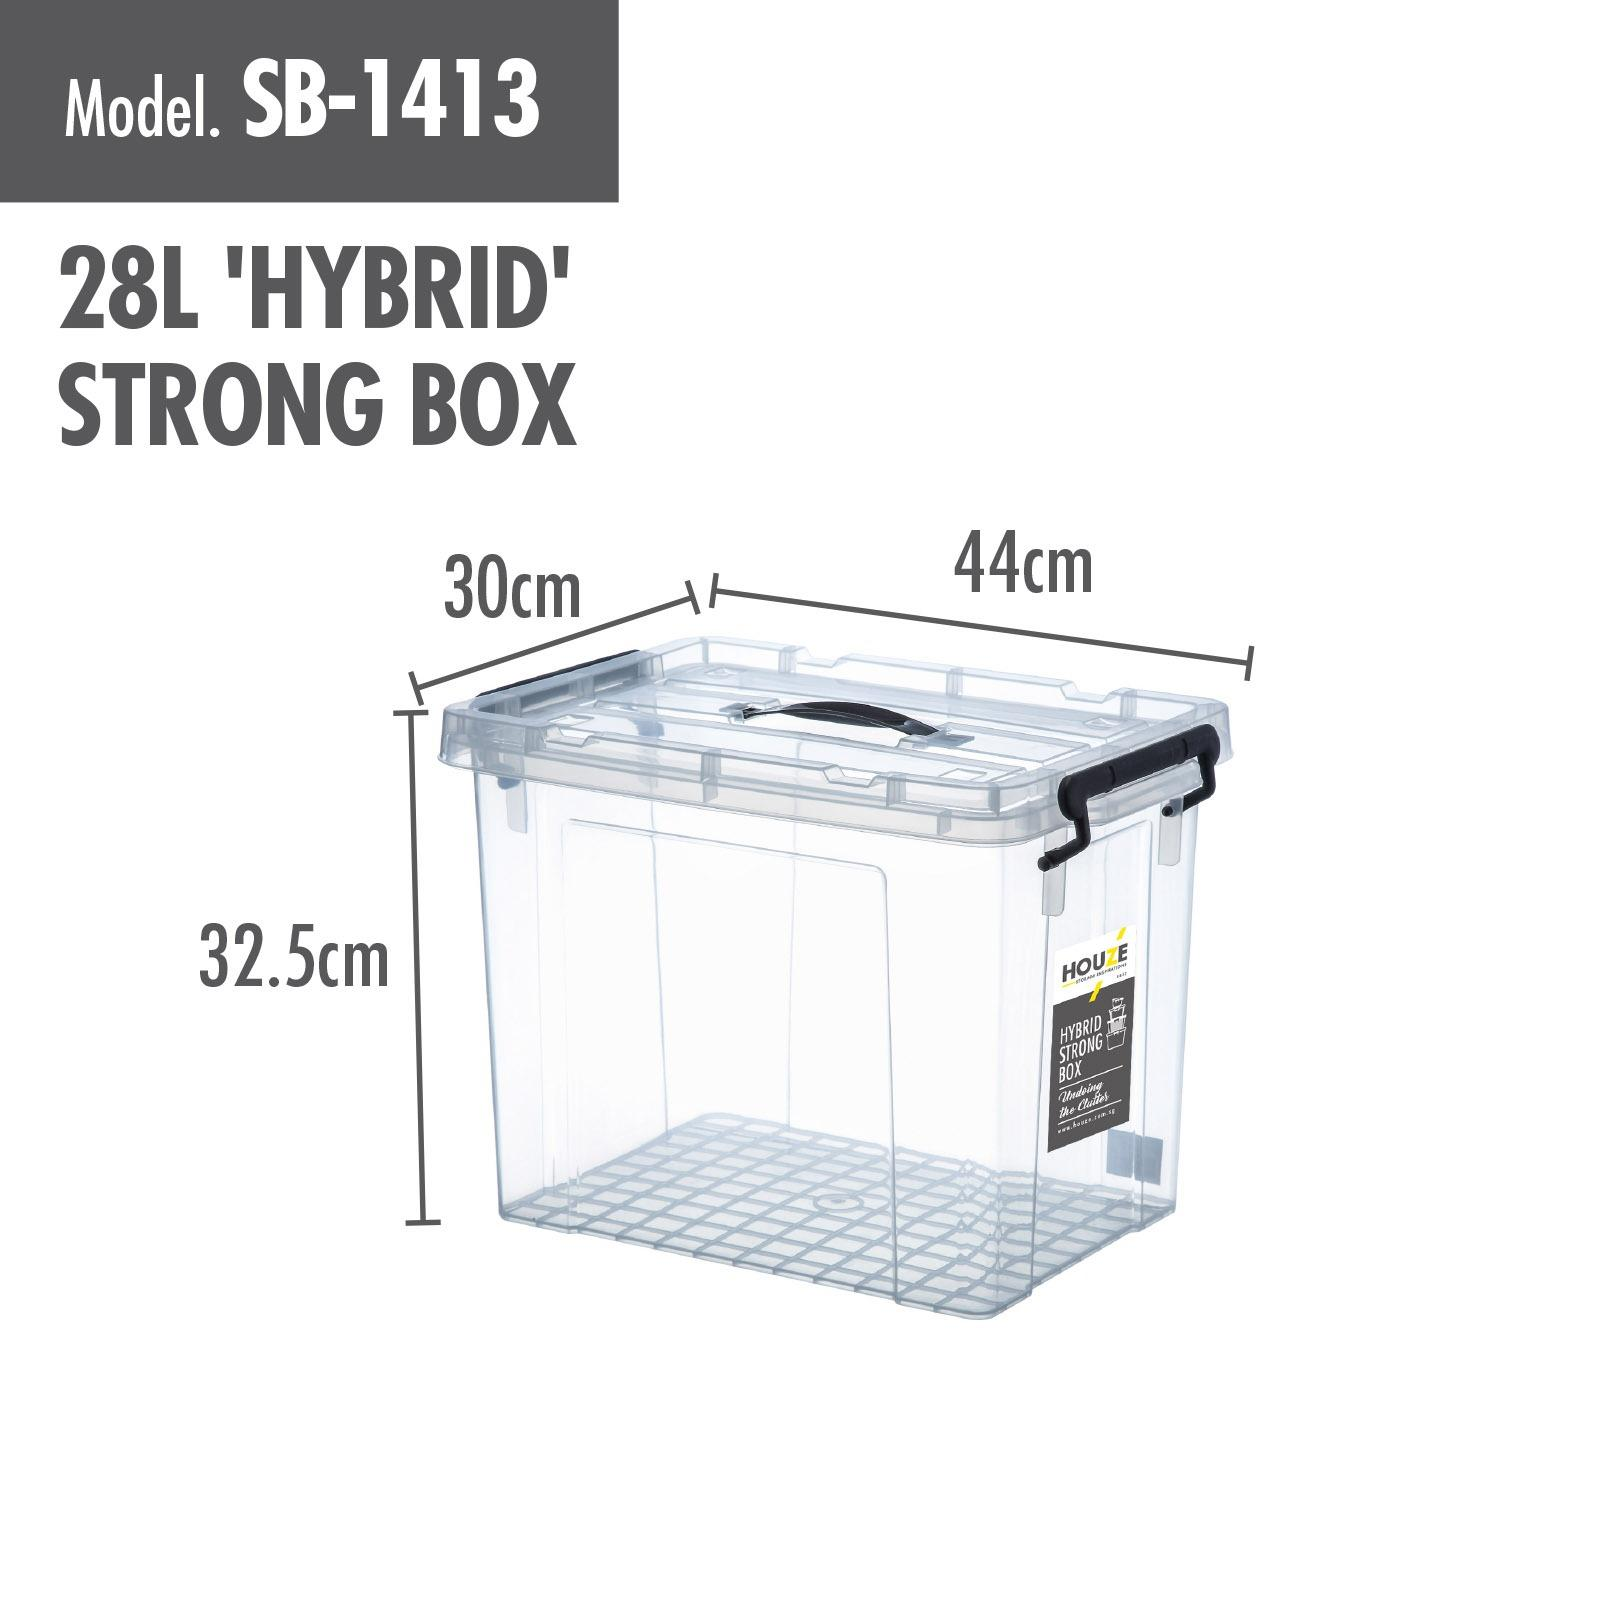 Where Can I Buy Houze 28L Hybrid Strong Box